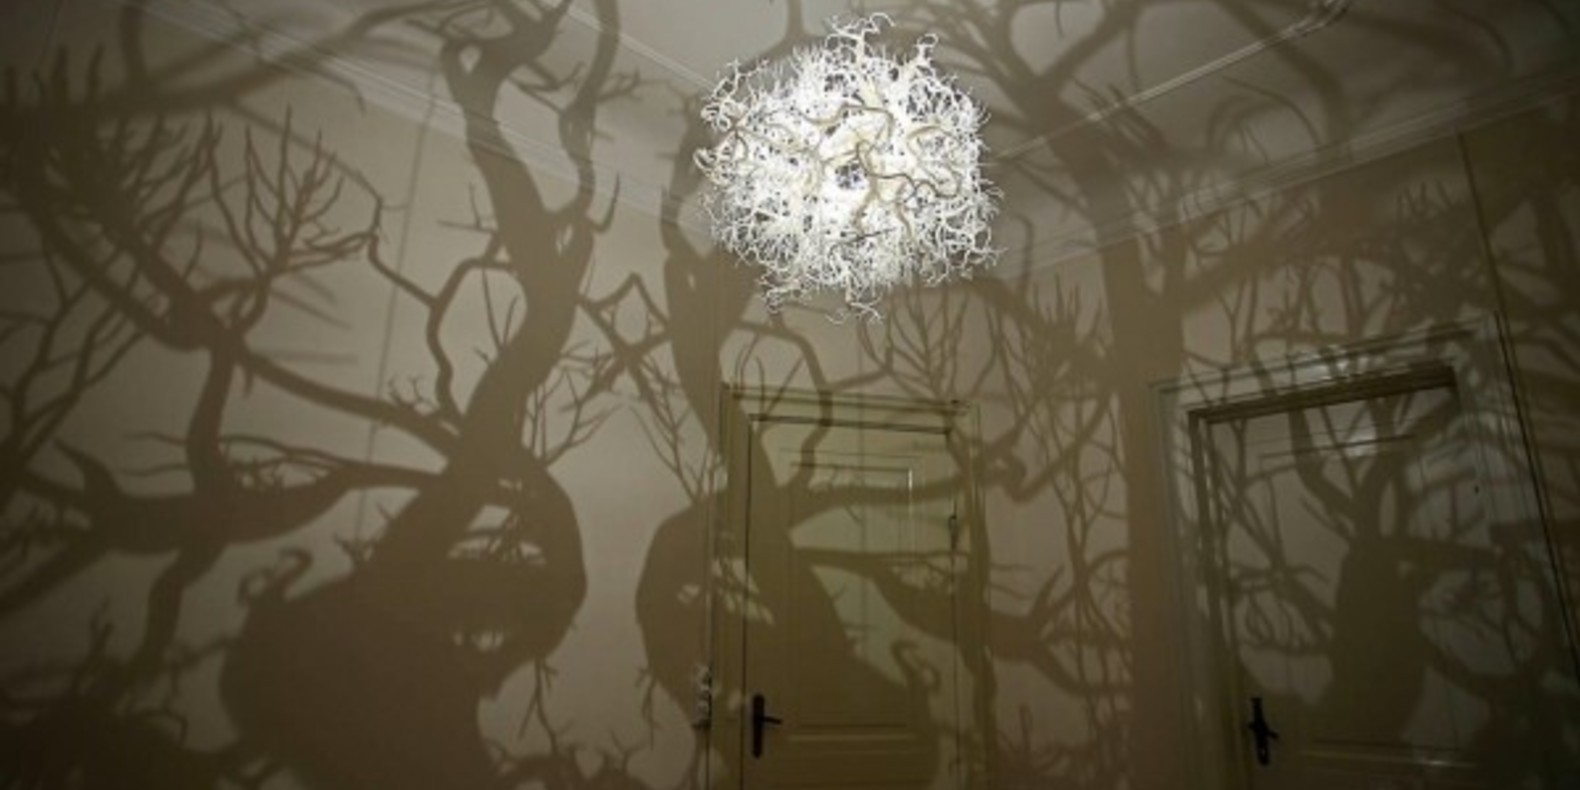 A 3D printed chandelier that creates the atmosphere of a mysterious forest